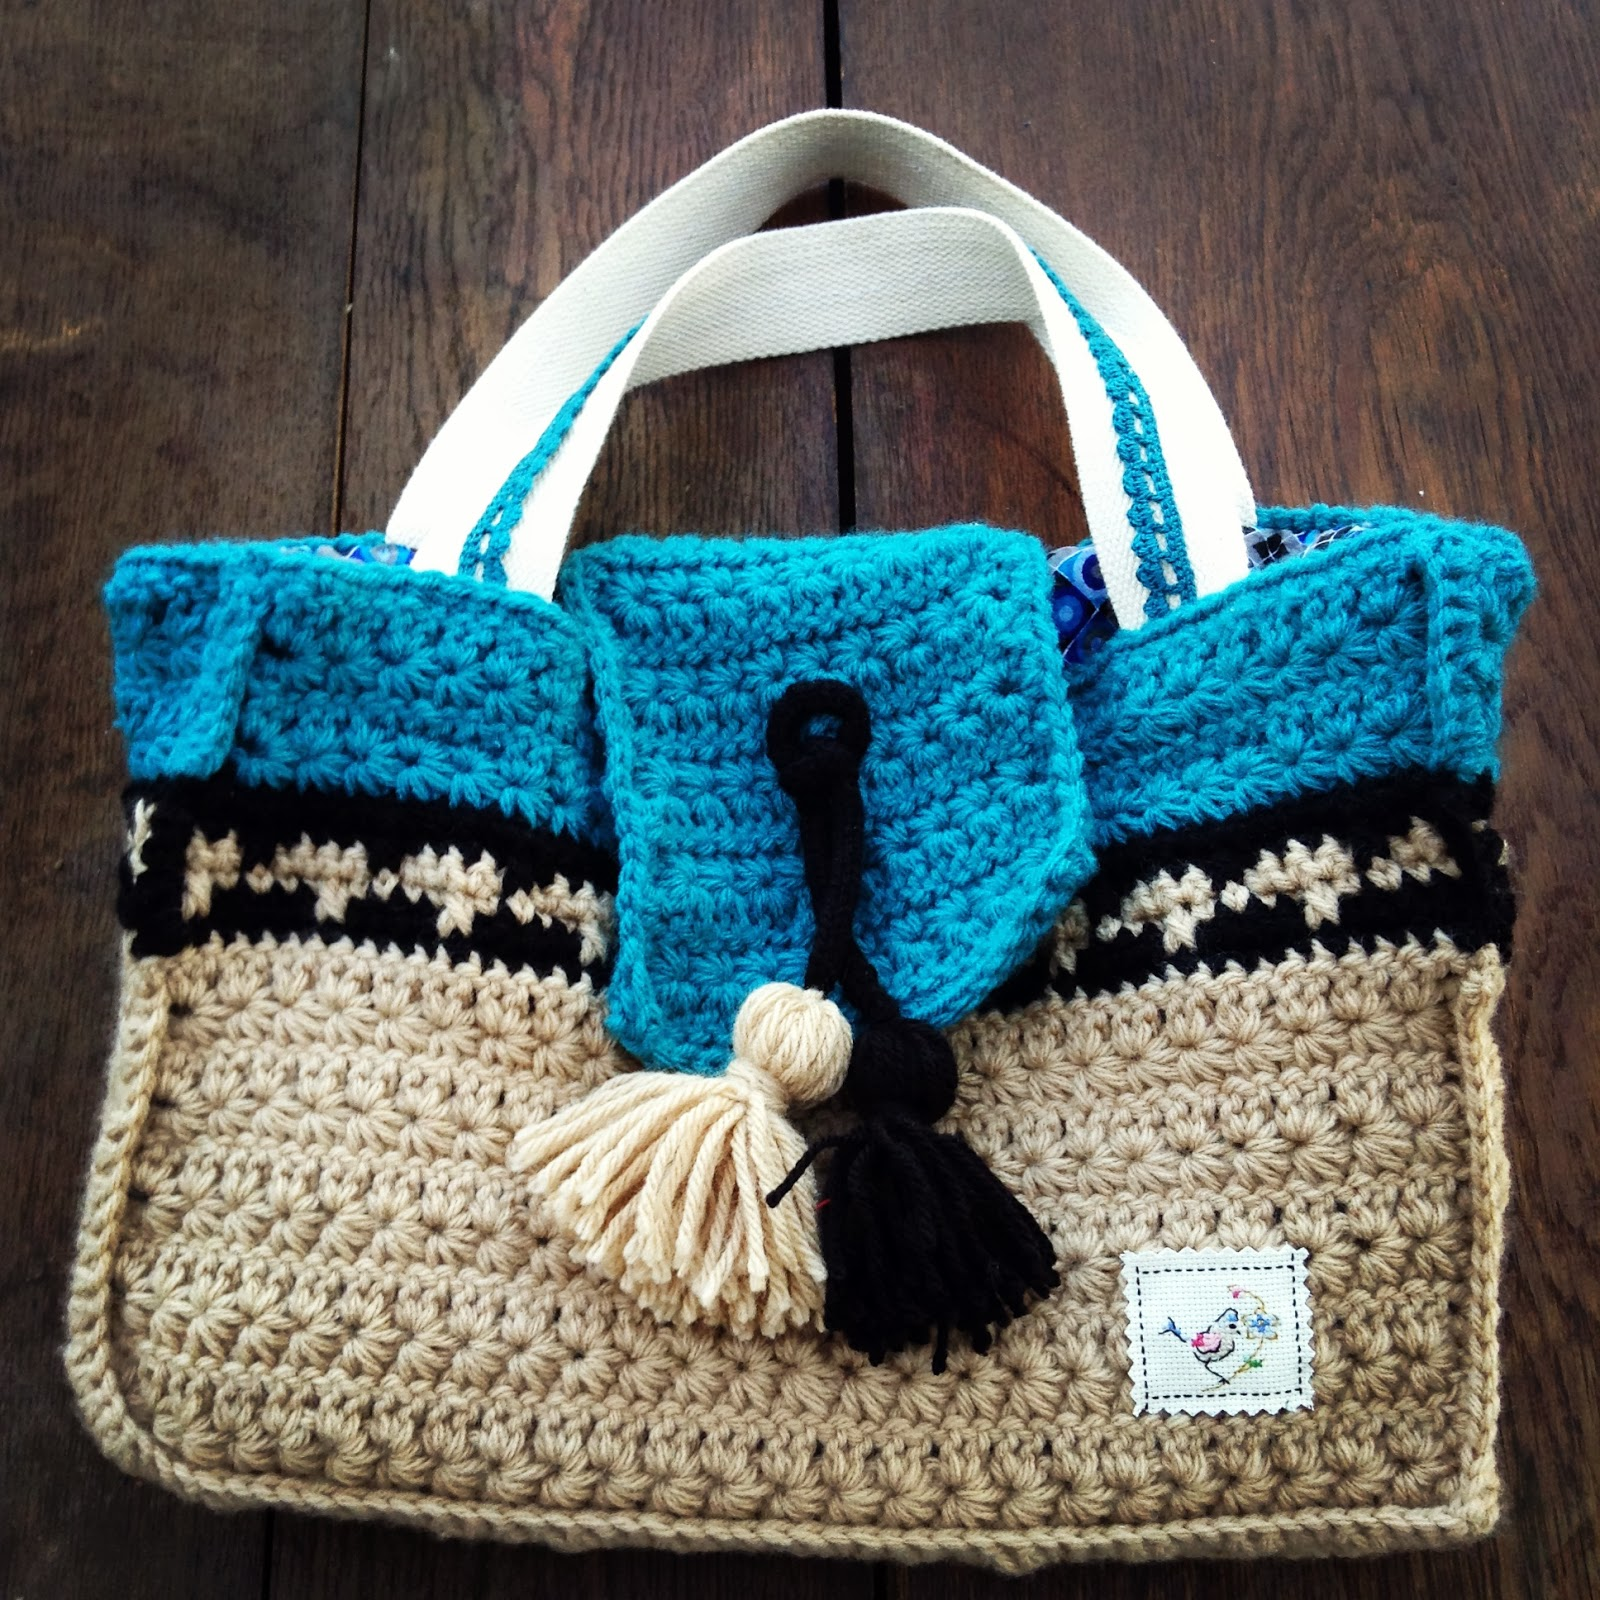 crochet bag with star stitch